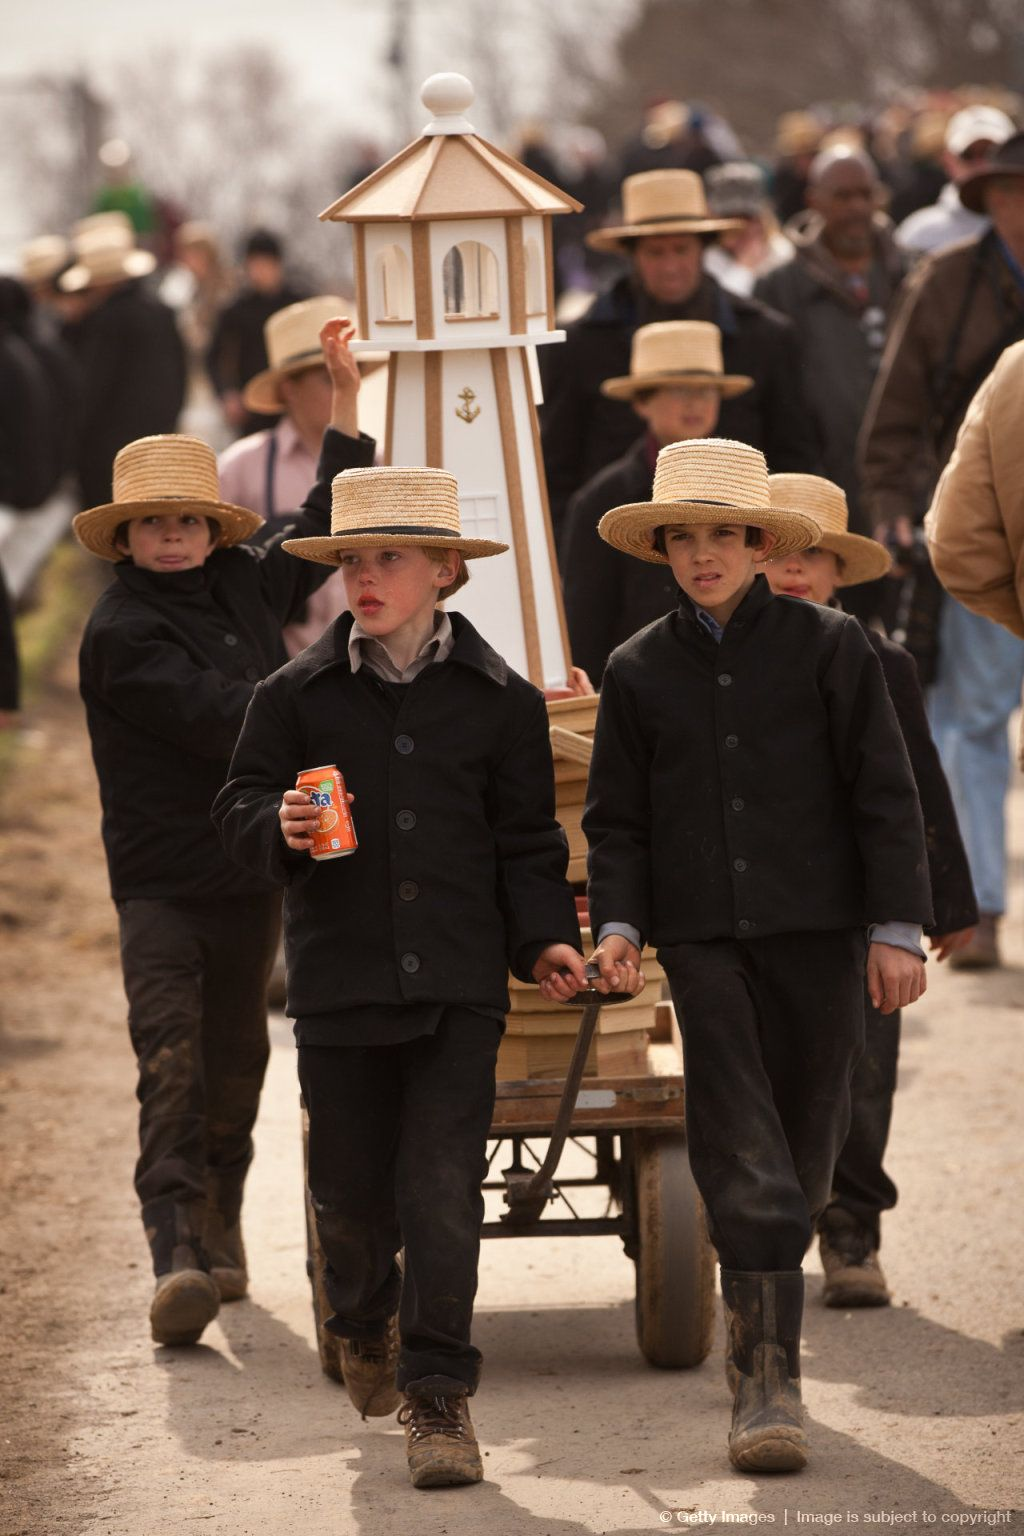 Amish A Secret Life Nederlands.Amish Community Holds Its Annual Mud Sale An Amish Portrait